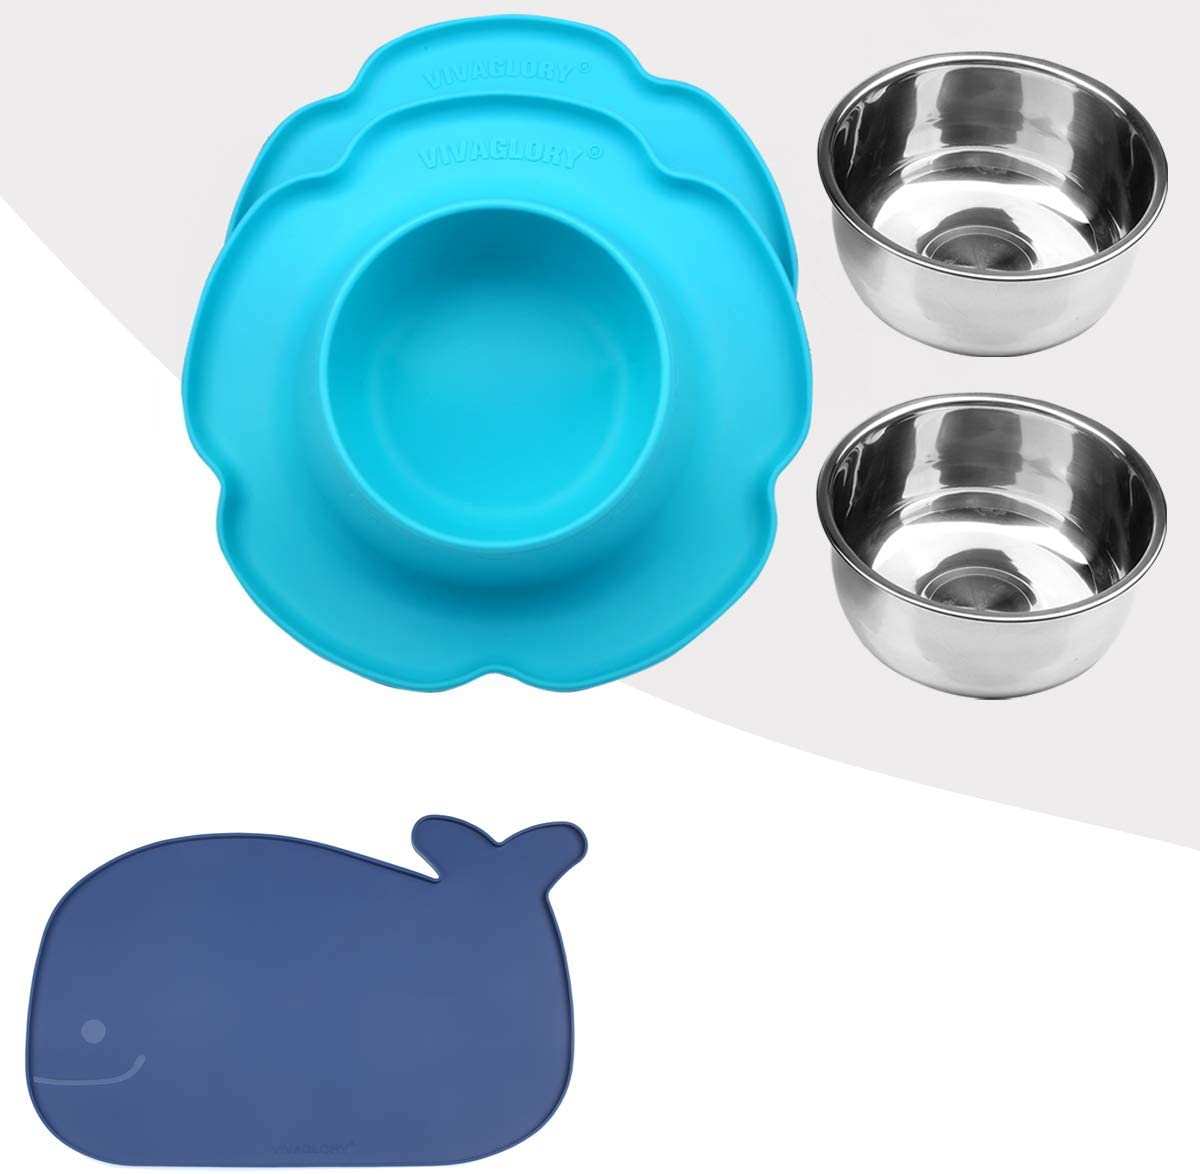 Vivaglory Pet Feeding Mat and Bowl Set with Mat for Cats Puppy or Small Sized Dog